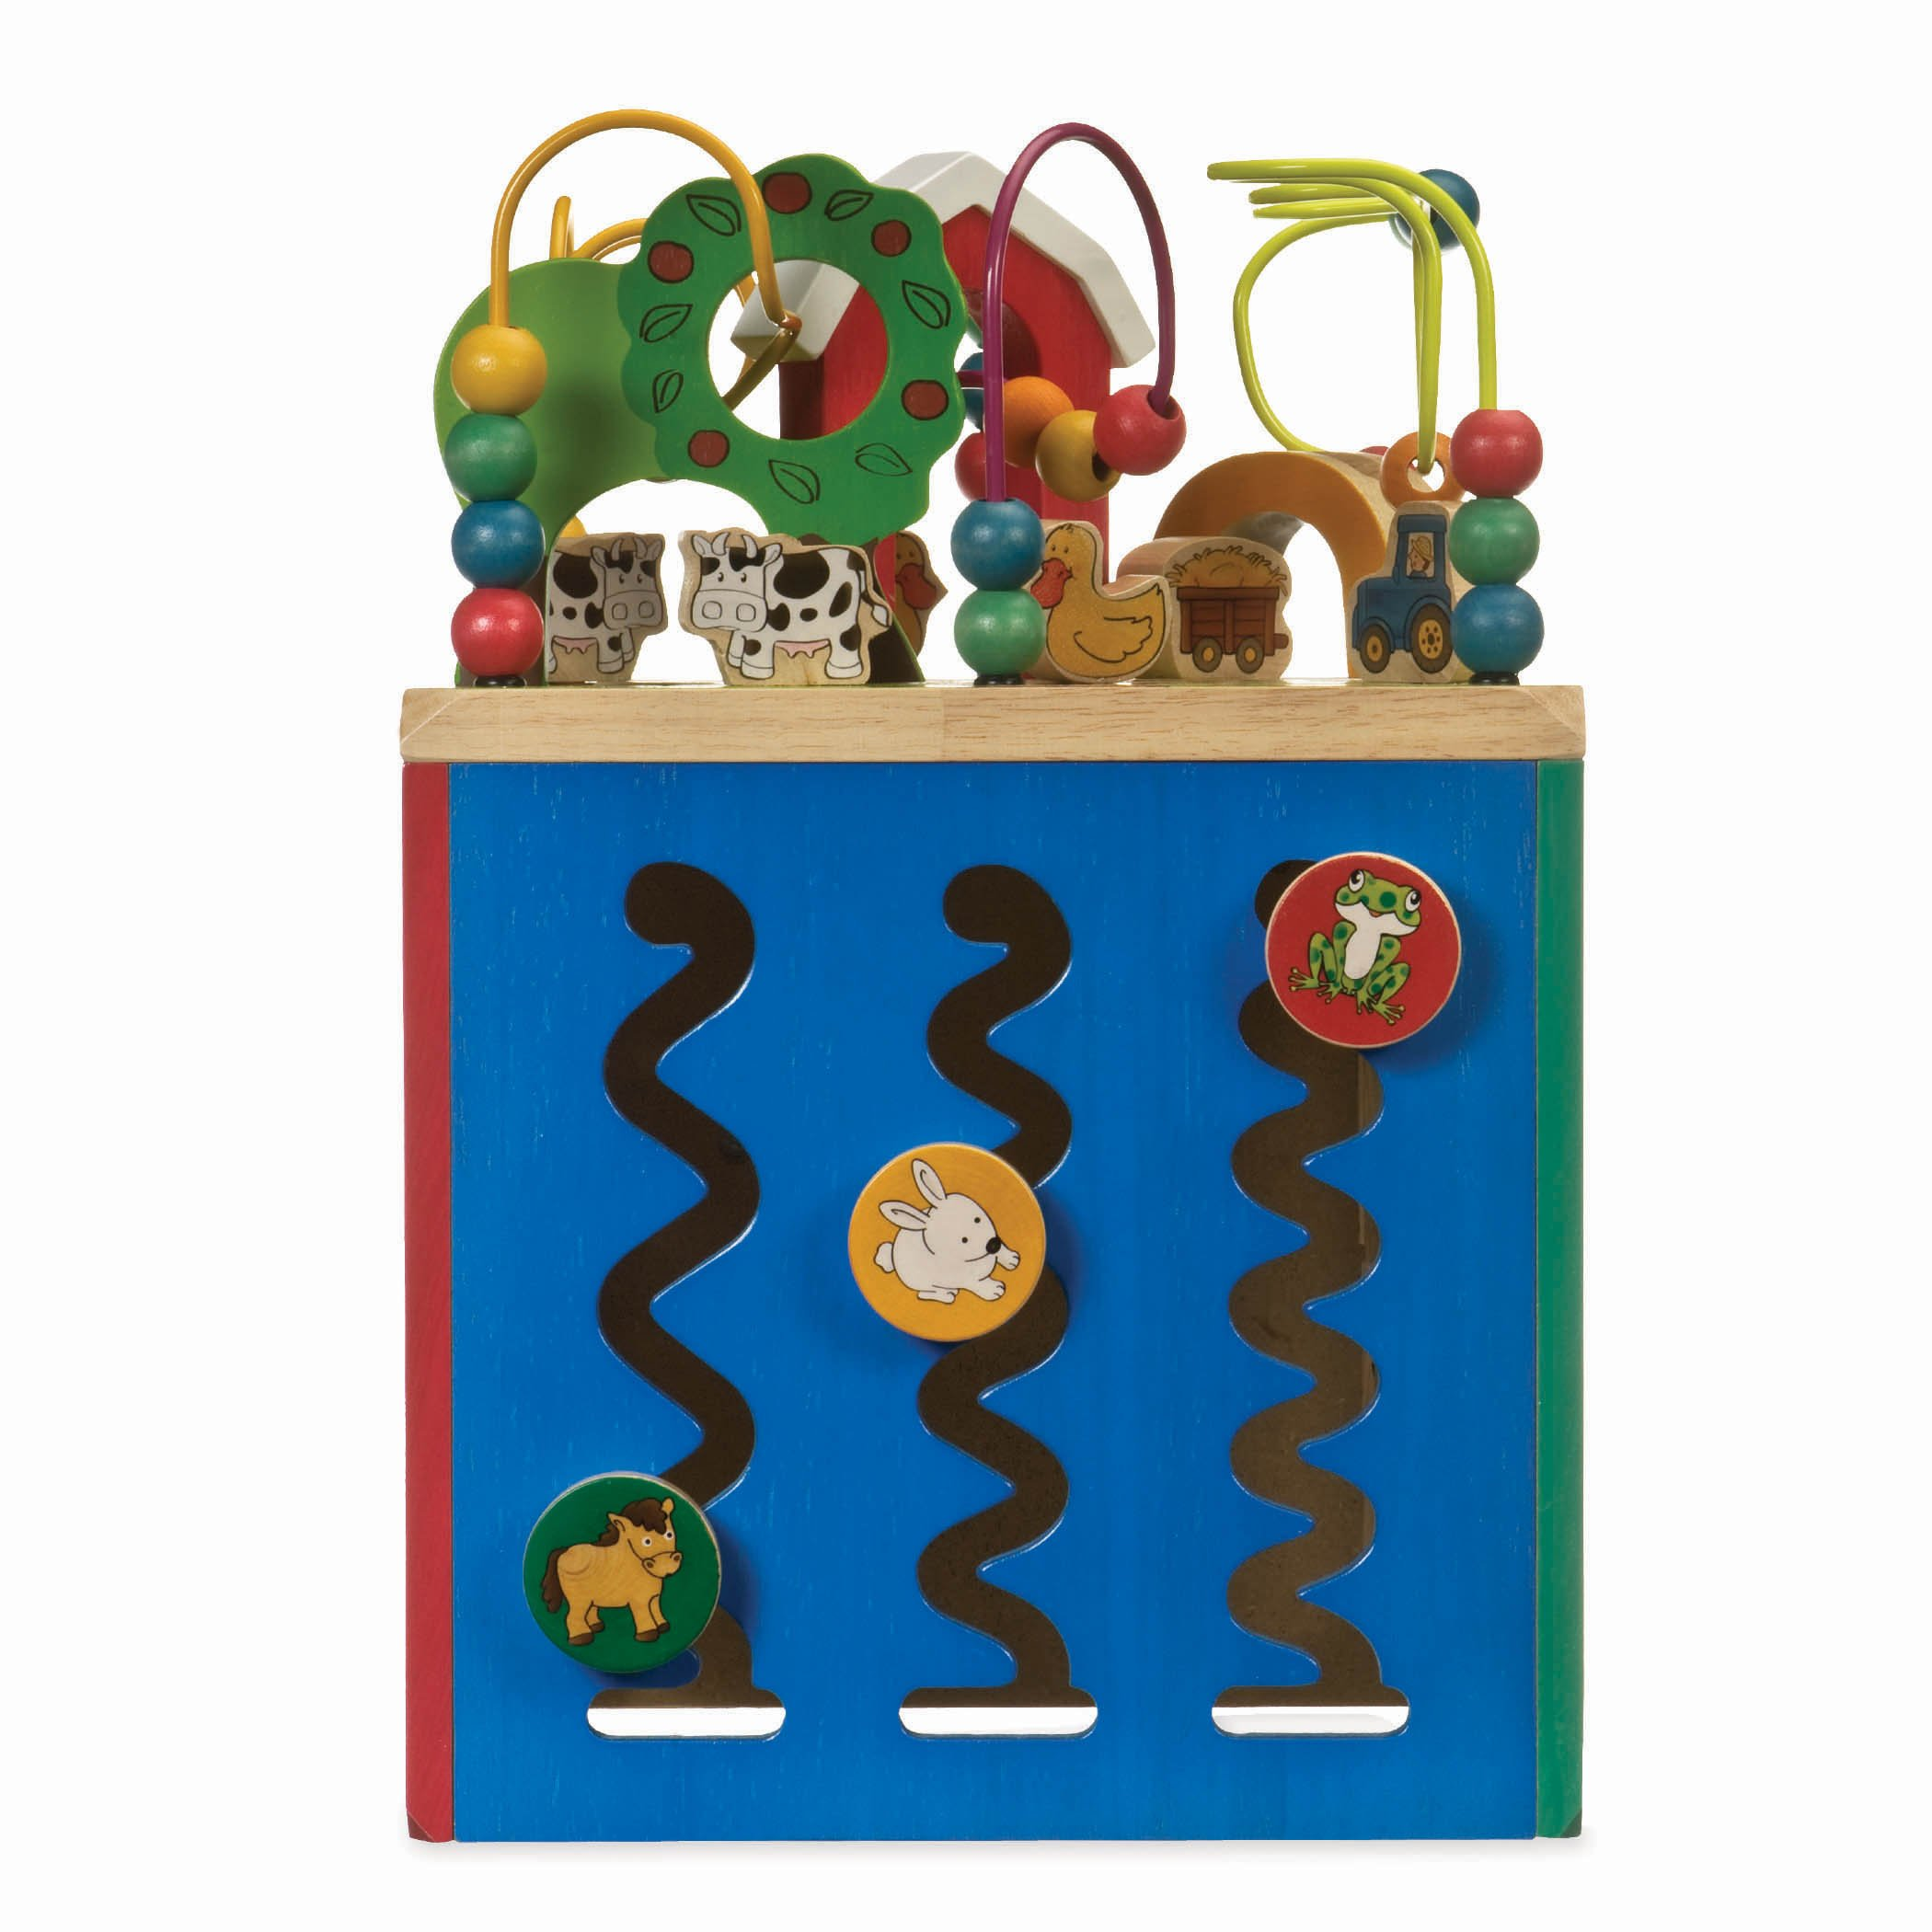 Battat - Wooden Activity Cube - Discover Farm Animals Activity Center for Kids 1 year + by Battat (Image #4)